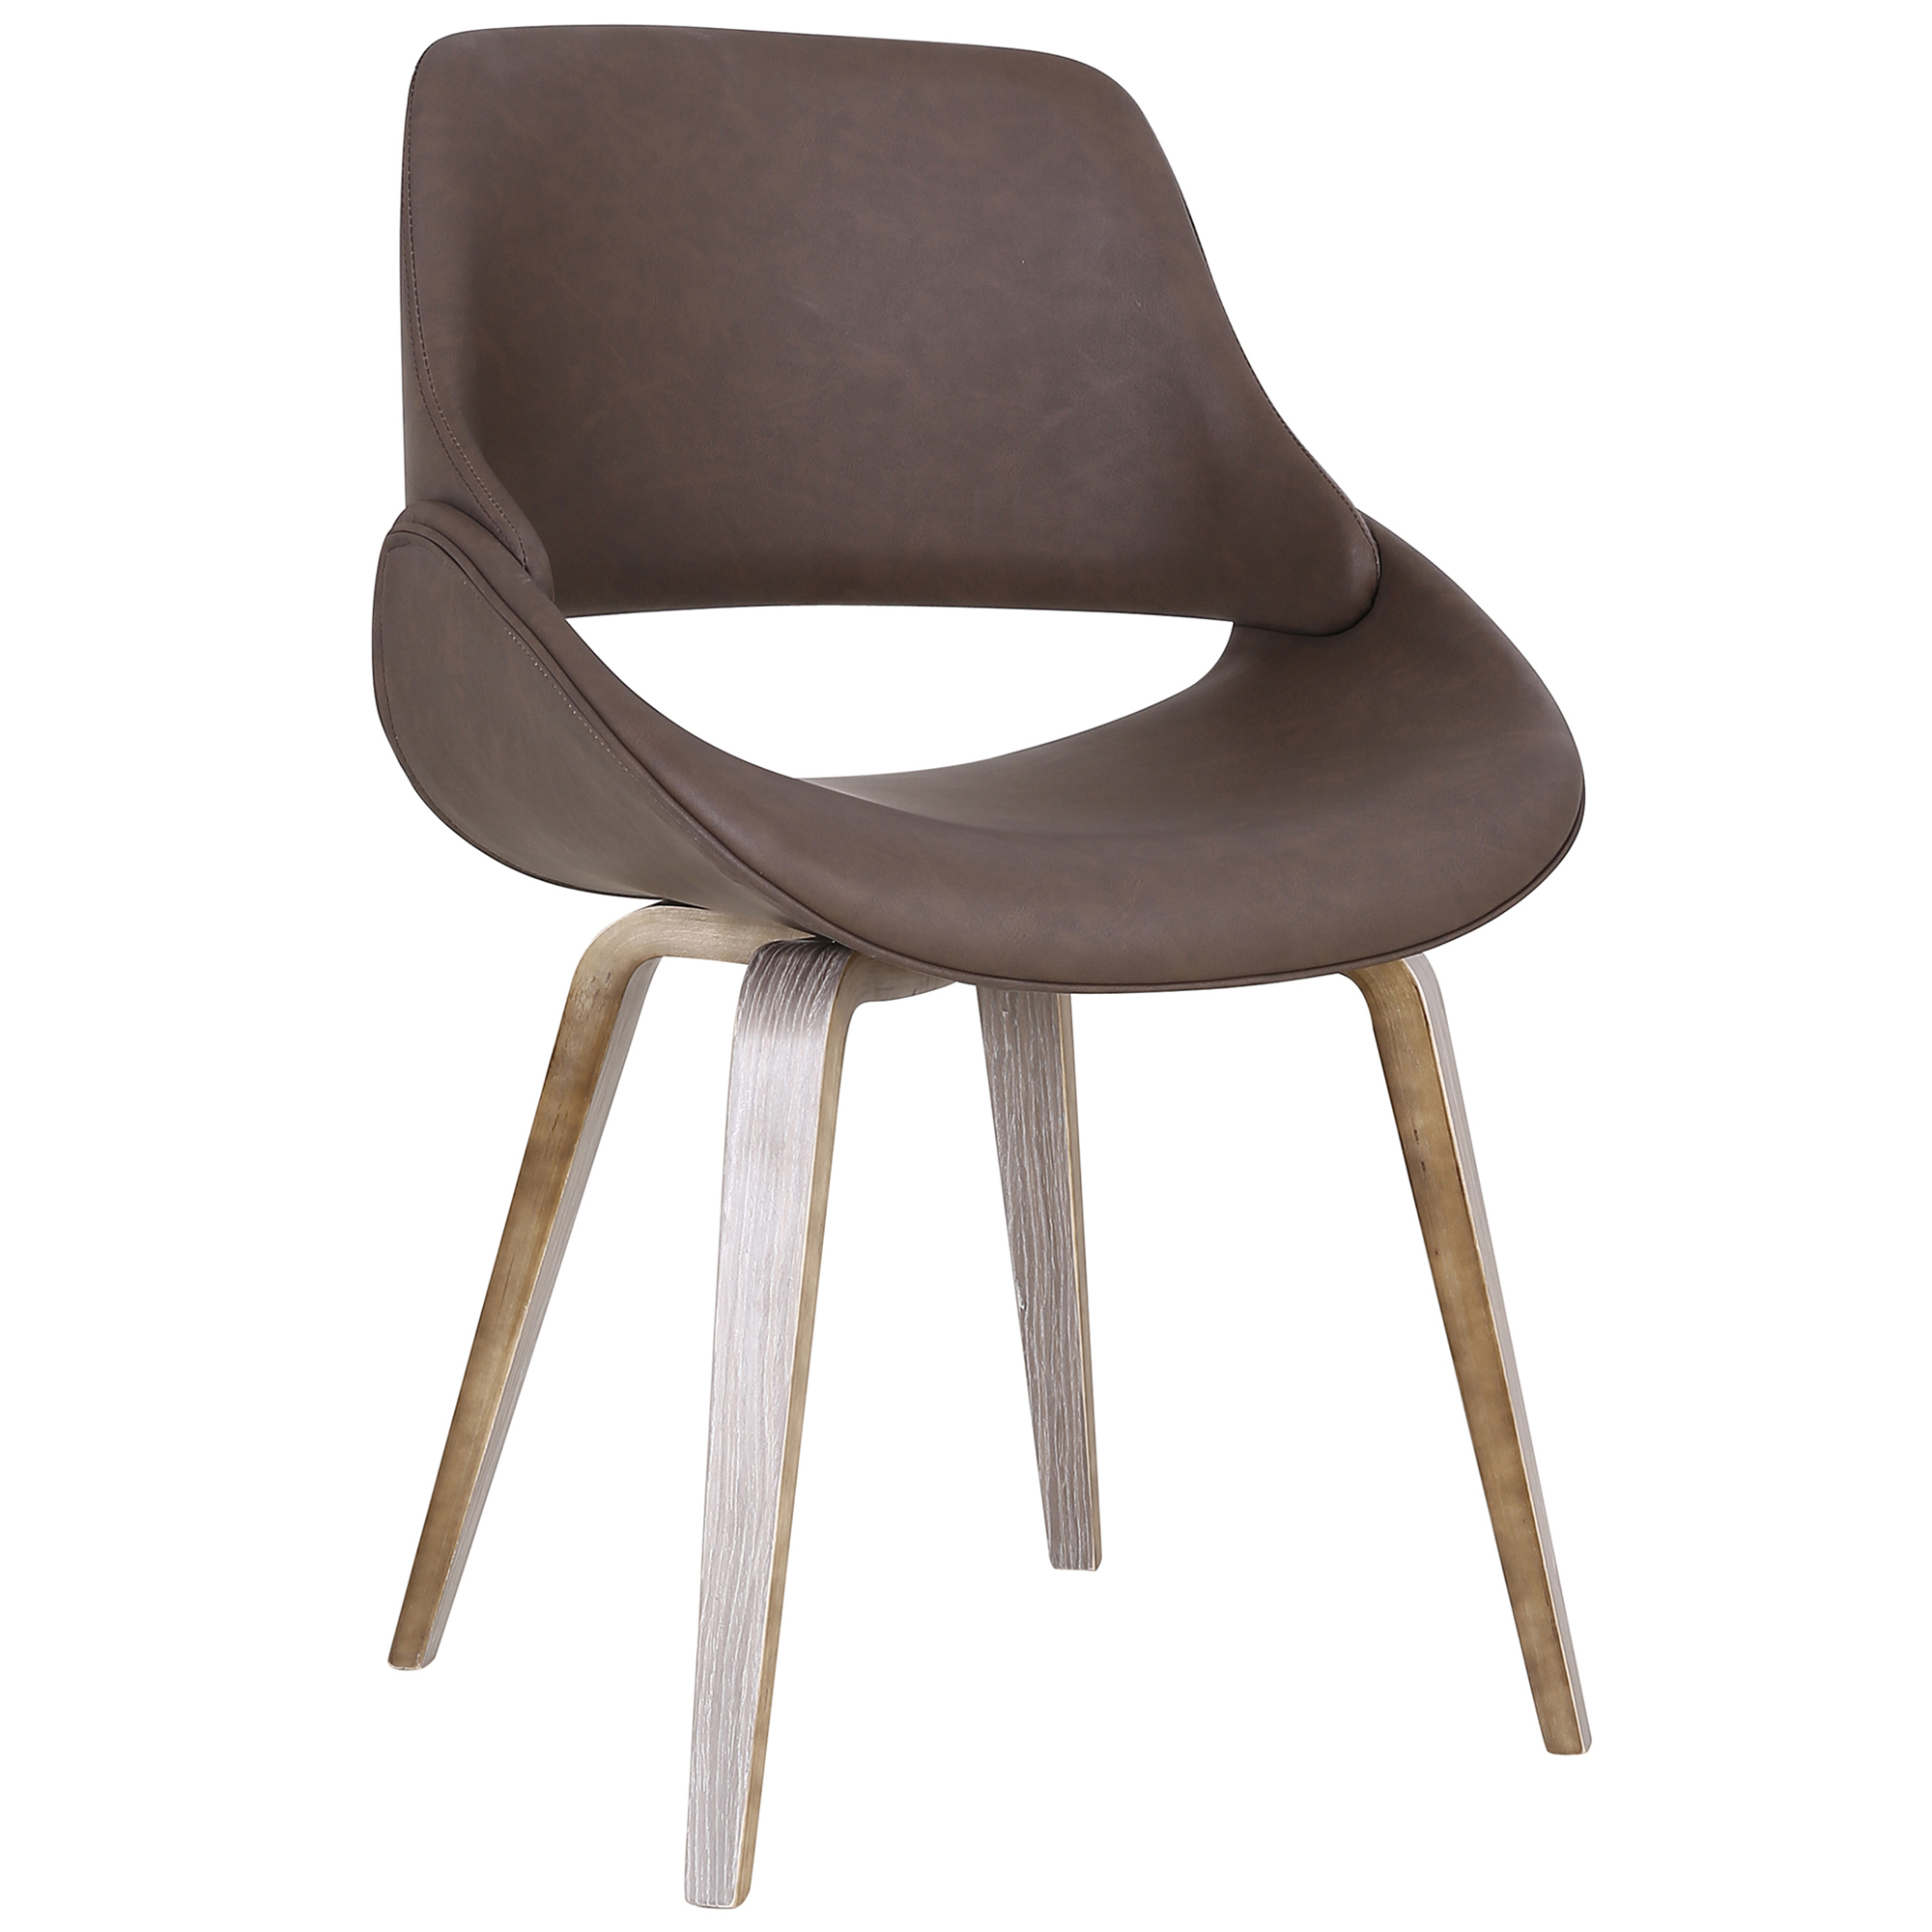 Mid-Century Faux Leather & Bentwood Accent/Dining Chair in Brown